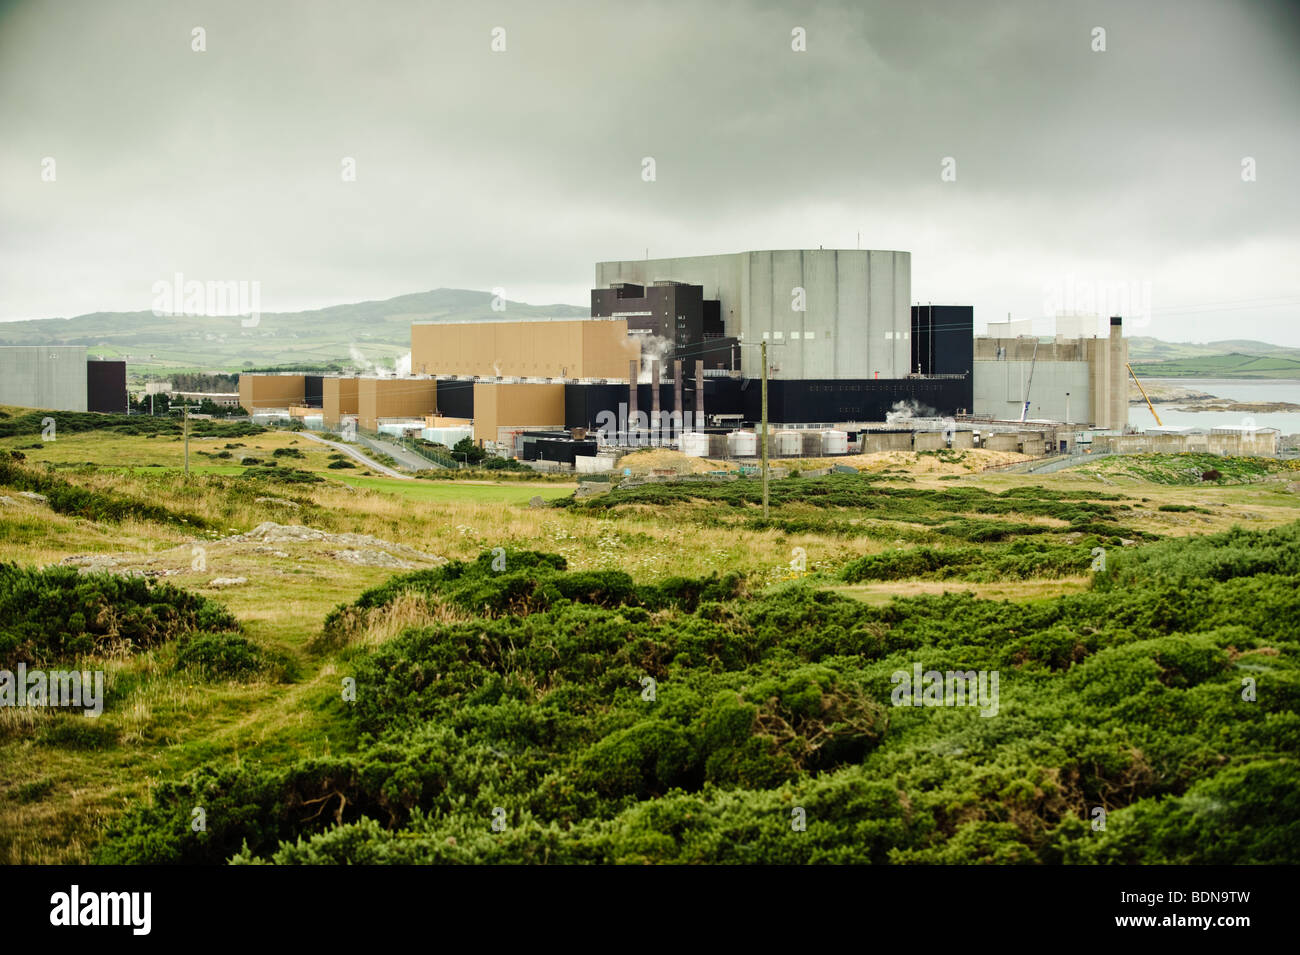 The Wylfa atomic nuclear power station, on the northern coastline of Anglesey, north Wales UK - Stock Image